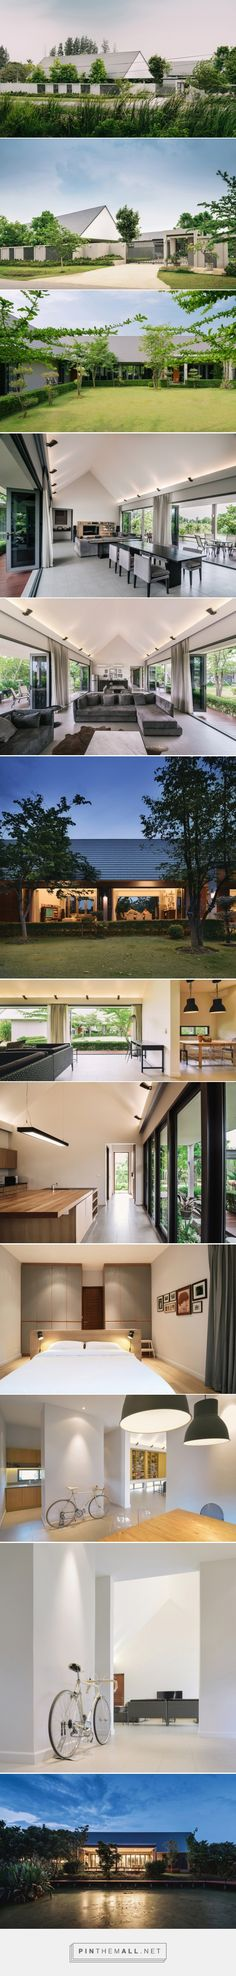 phongphat ueasangkhomset's triangle house in thailand - created via http://pinthemall.net